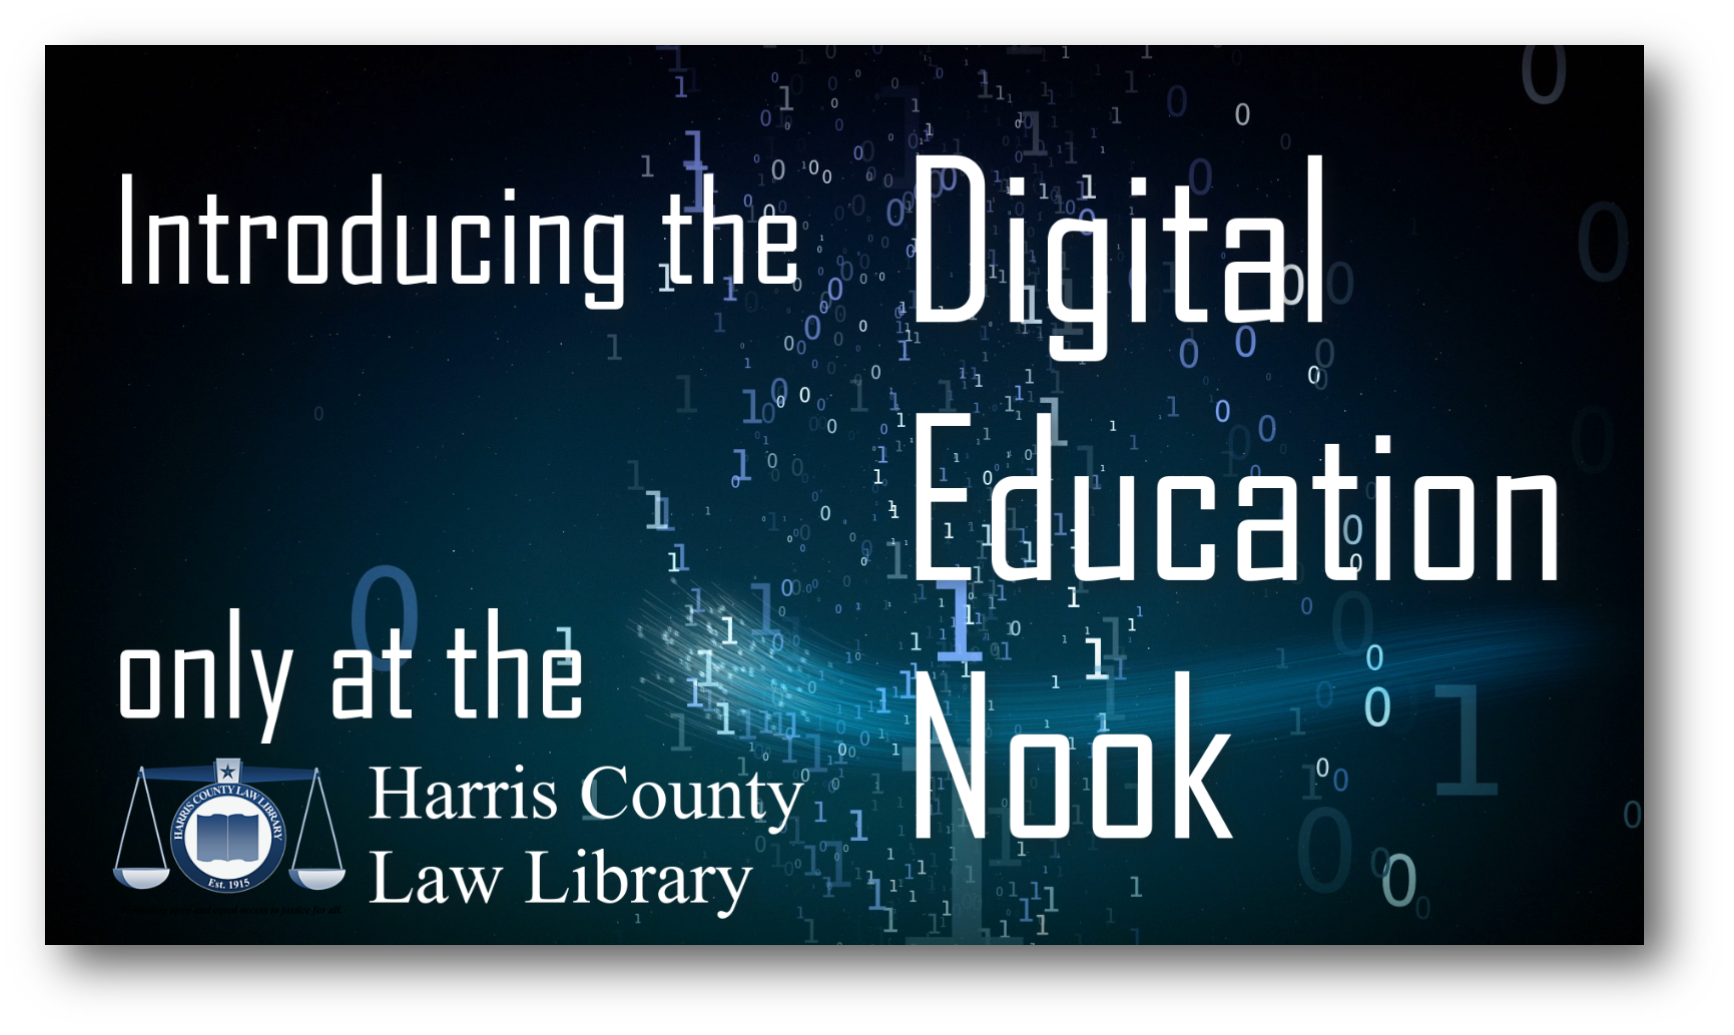 Introducing the Digital Education Nook only at the Harris County Law Library